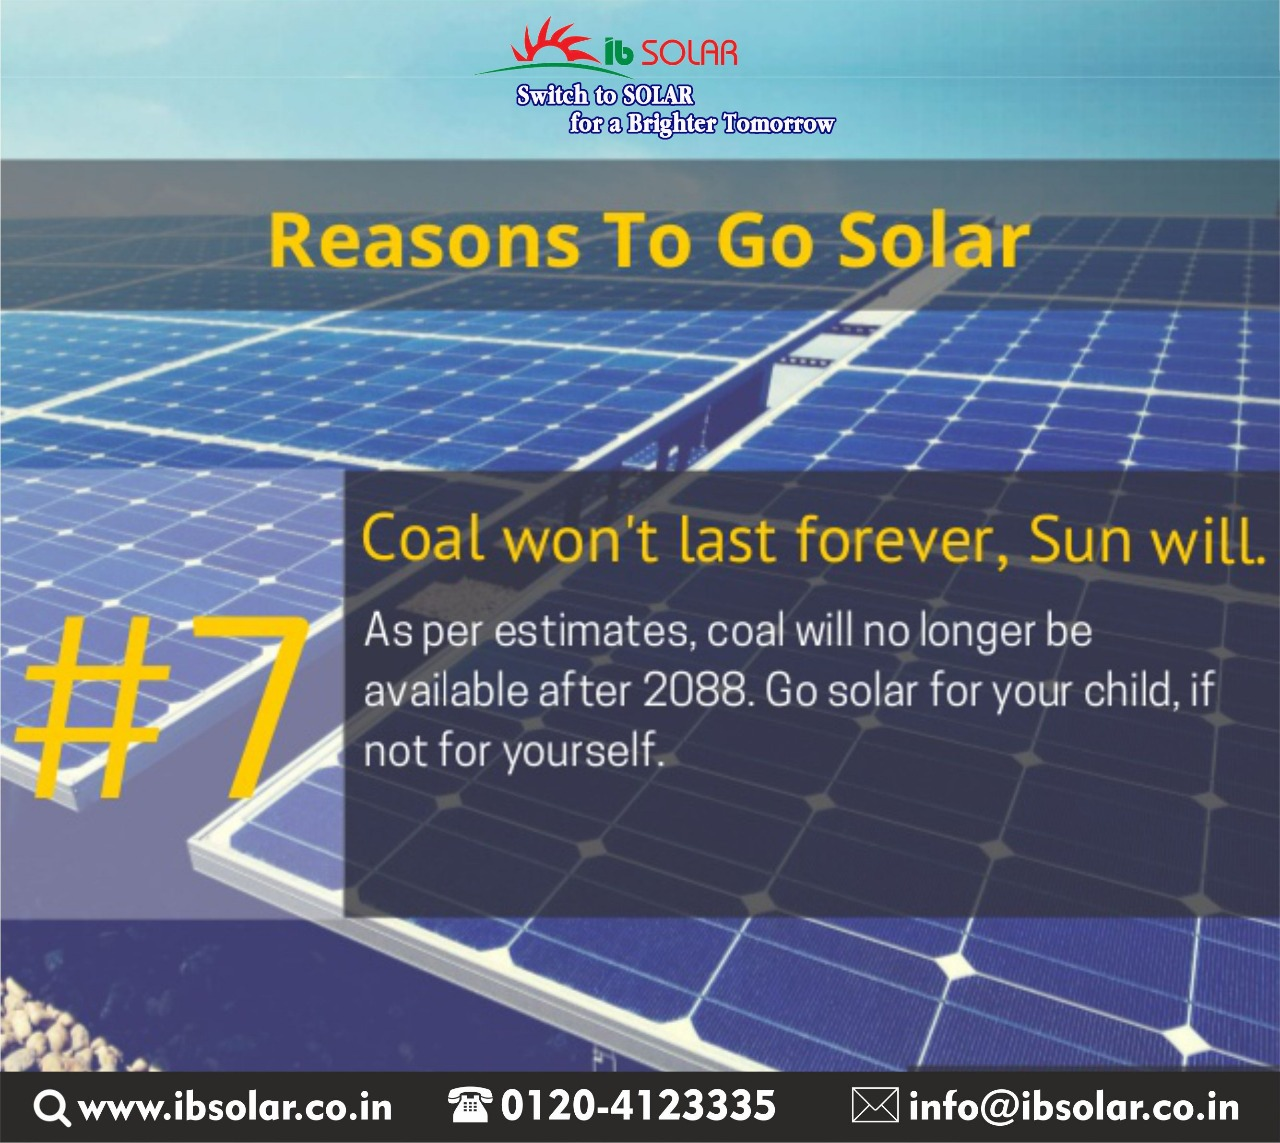 7 Coal won't last forever, Sun will.